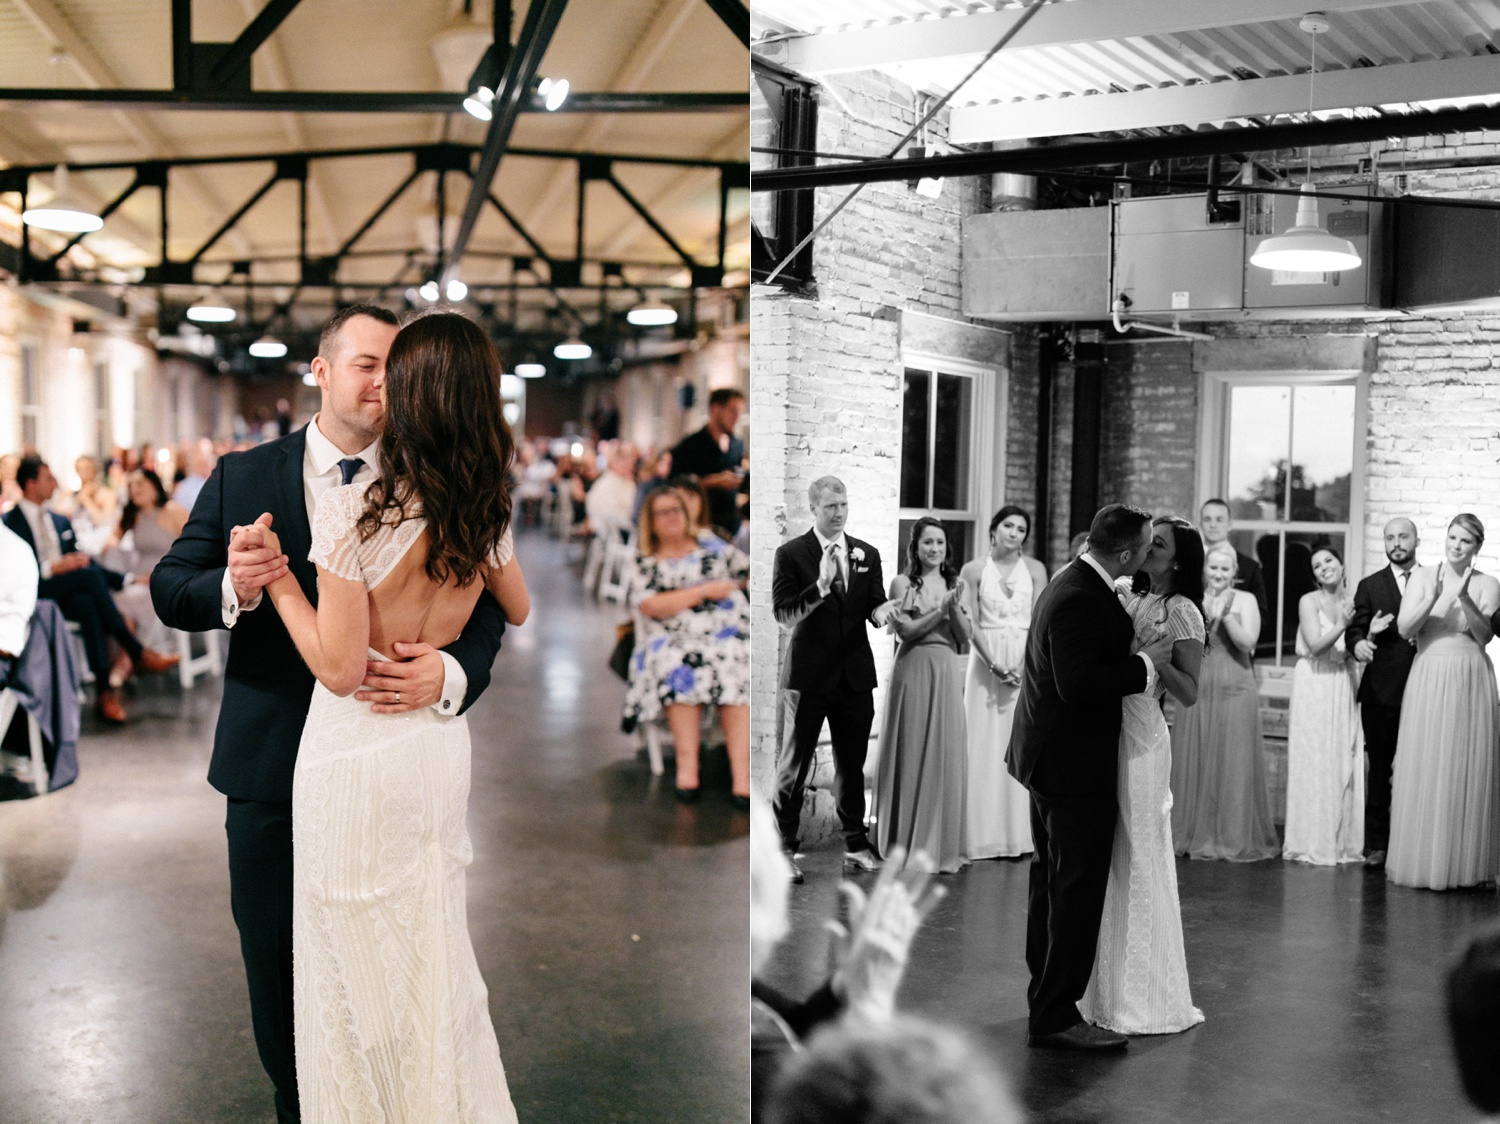 Kadee + Tyler | a raw, emotional wedding at the Filter Building on White Rock Lake in Dallas, TX by North Texas Wedding Photographer, Rachel Meagan Photography 201